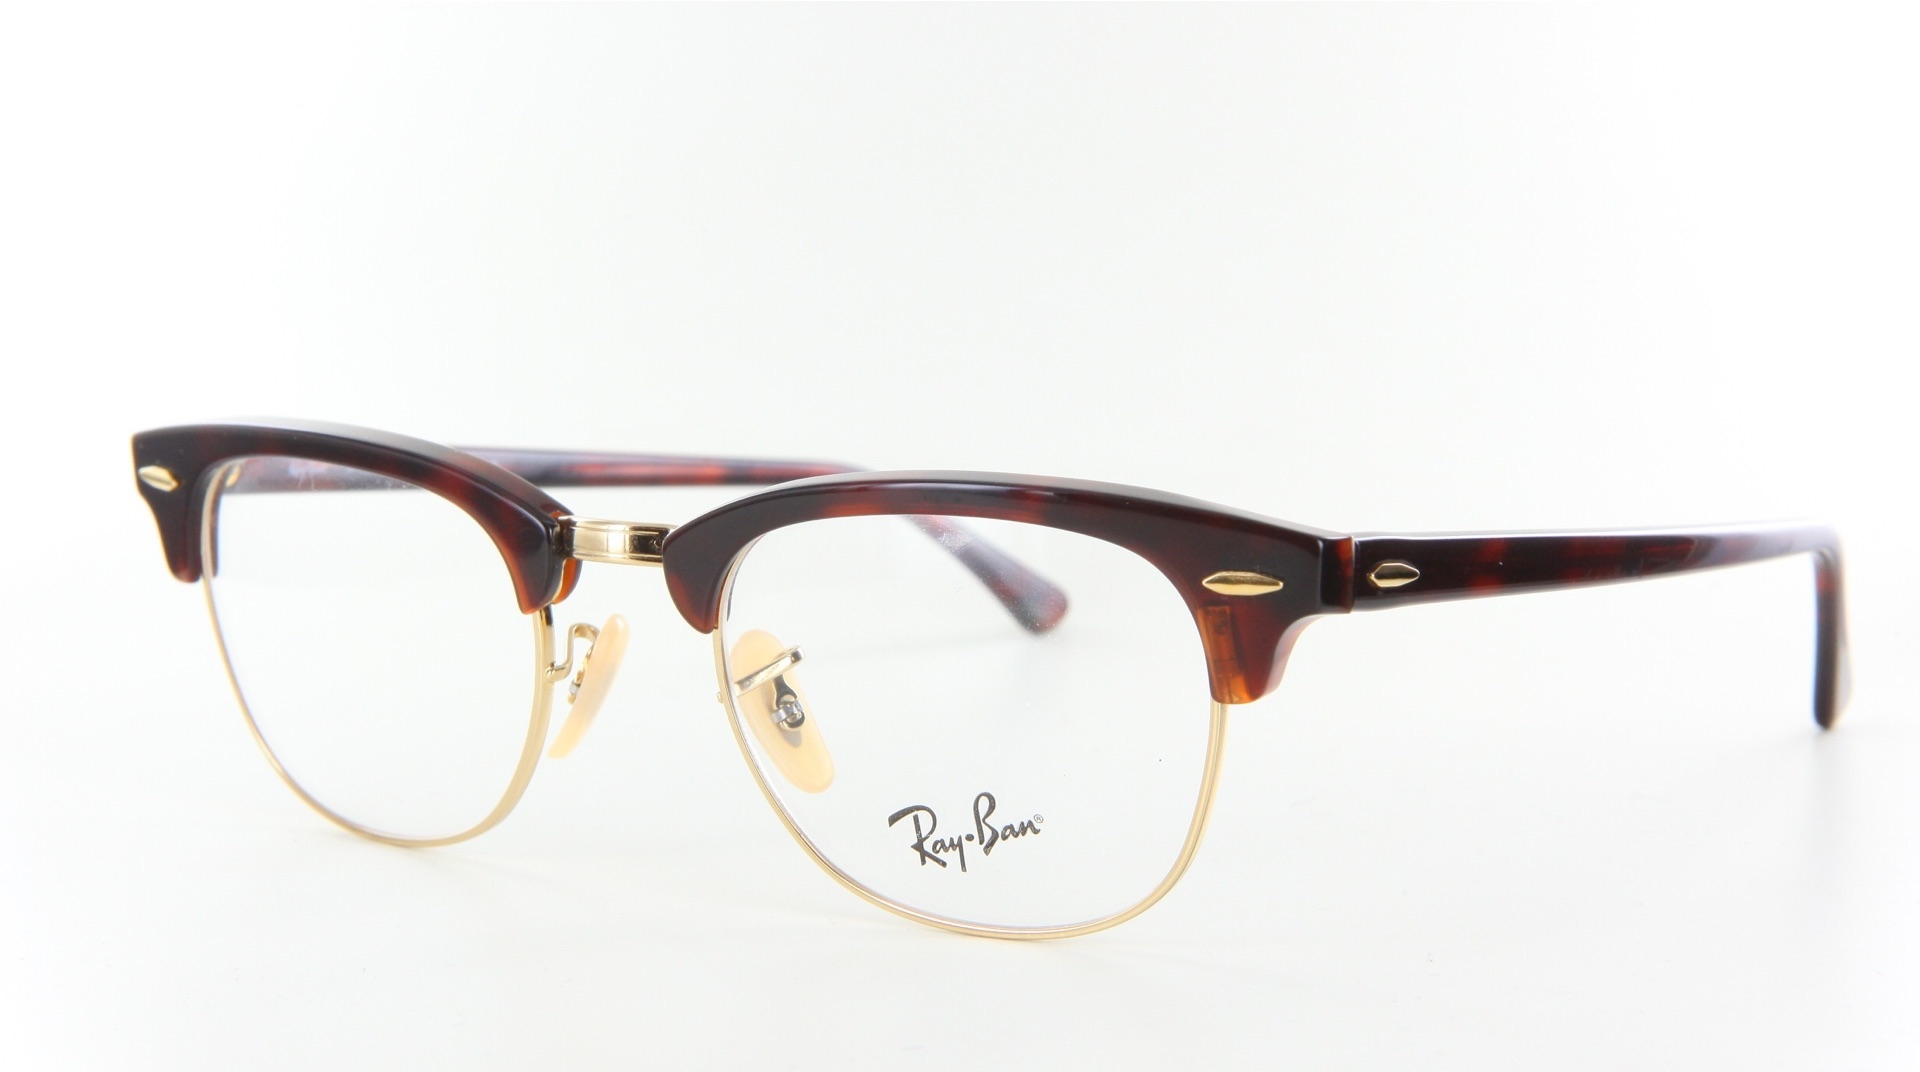 Ray-Ban - ref: 69465